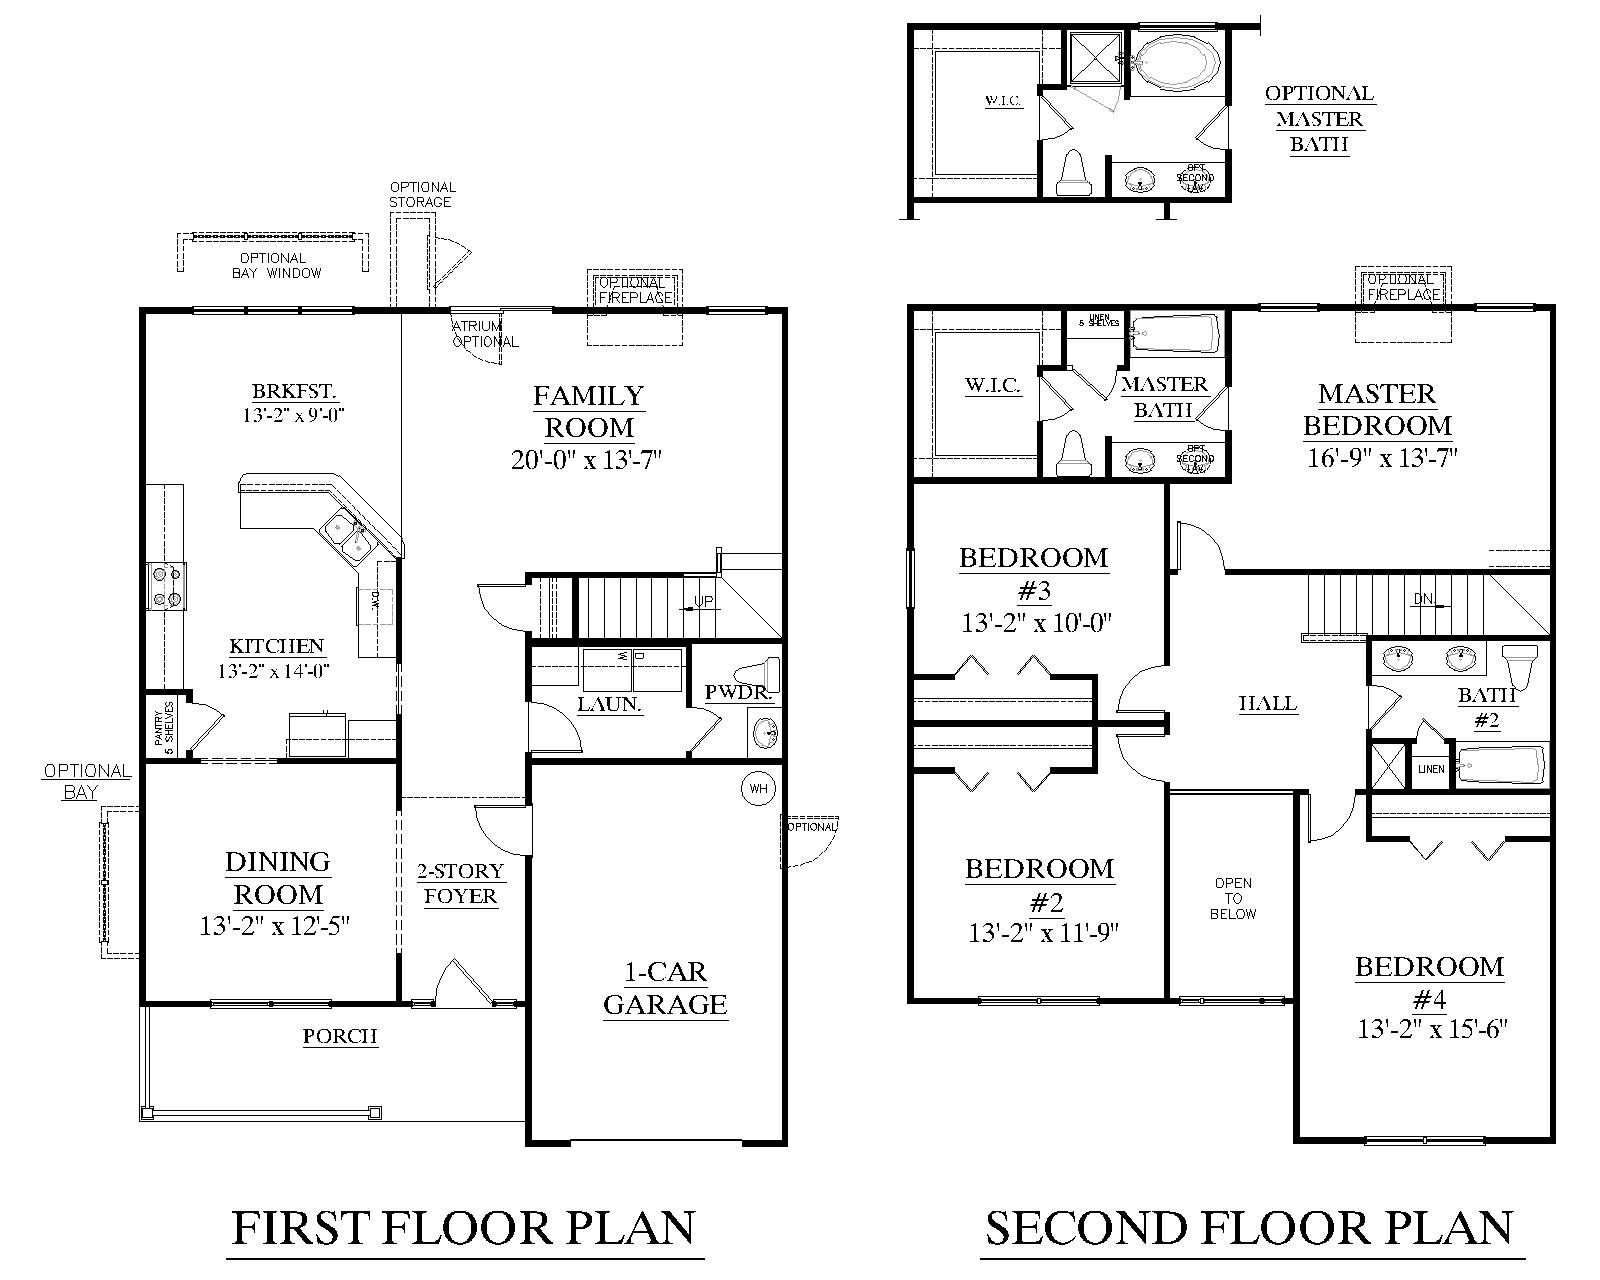 House plan 2310 kennsington floor plan 2310 square feet for 2 story great room house plans